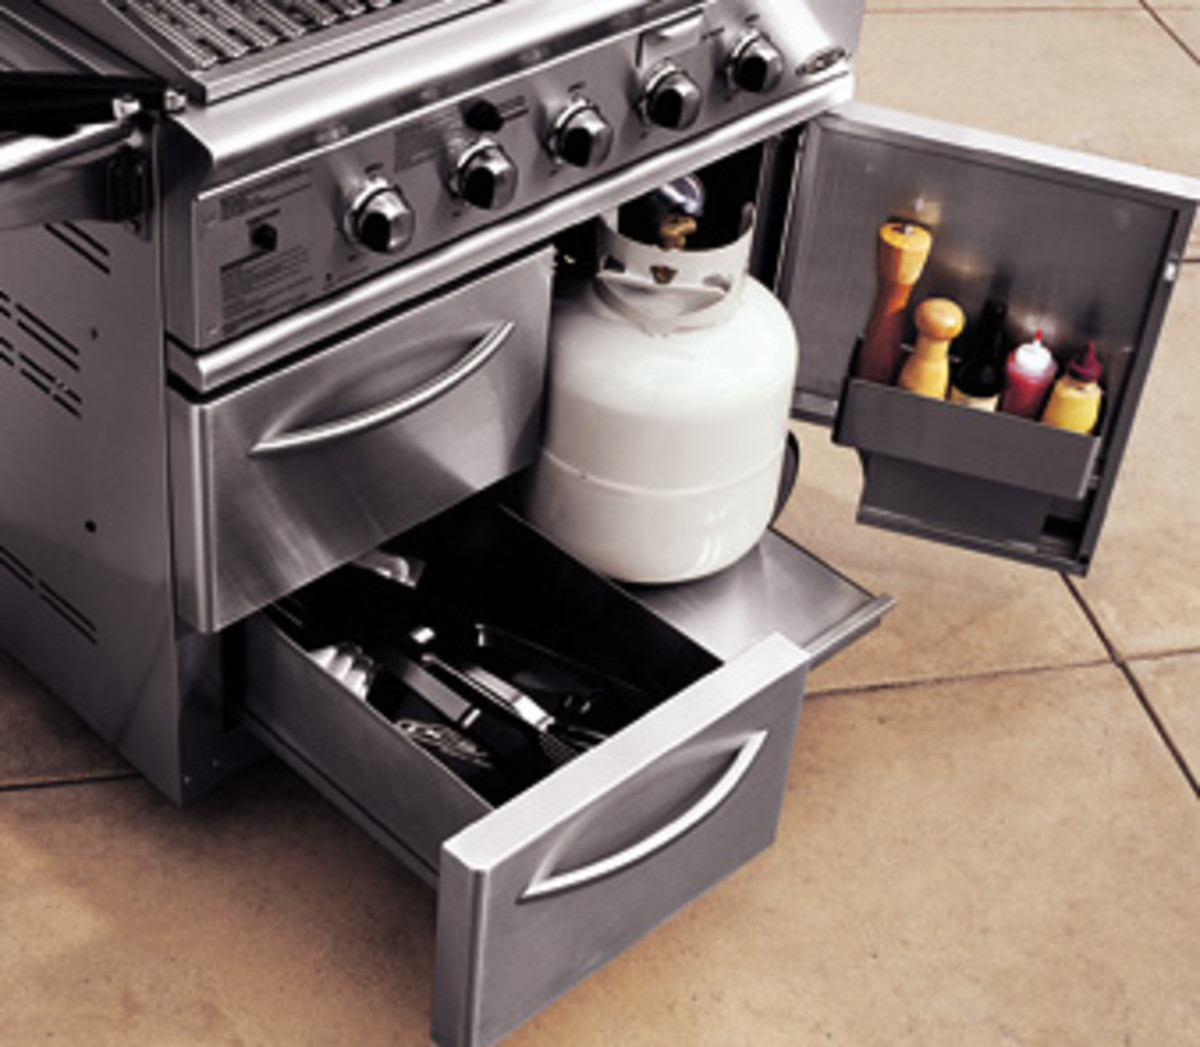 The dcs 36 and 48 inch grills had portable carts with propane tank drawers and storage drawers.